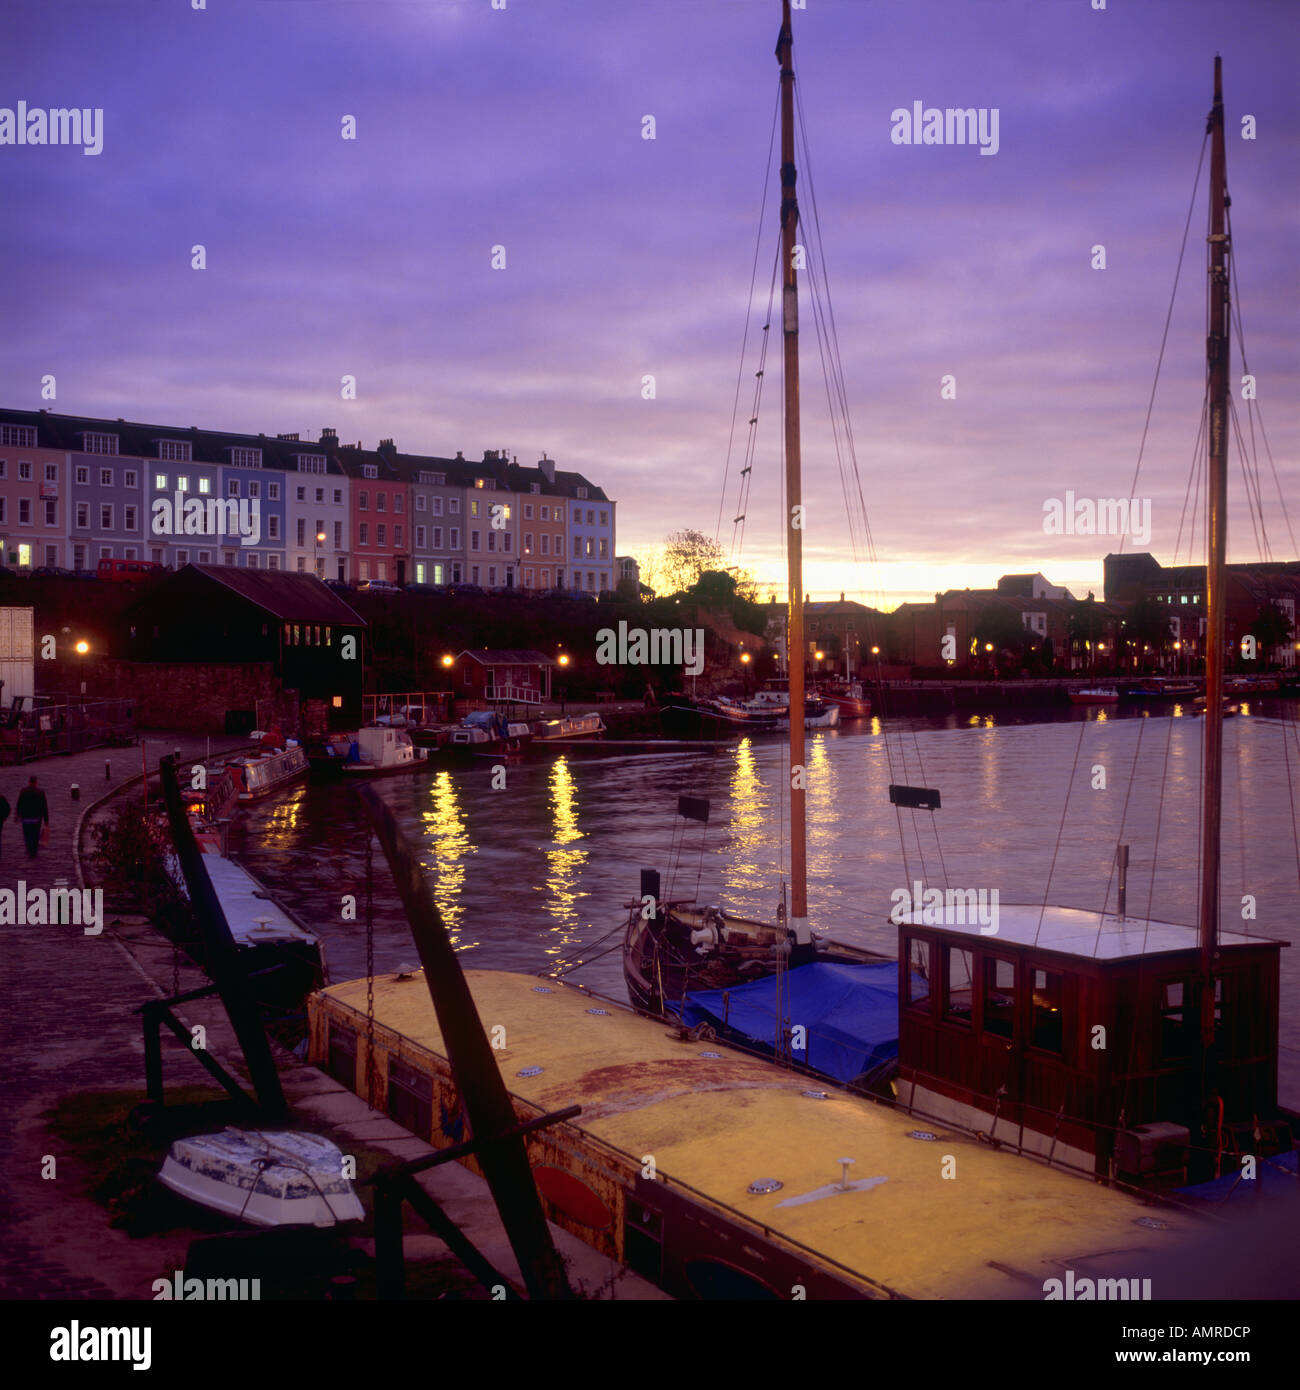 redcliffe-quay-and-the-floating-harbour-